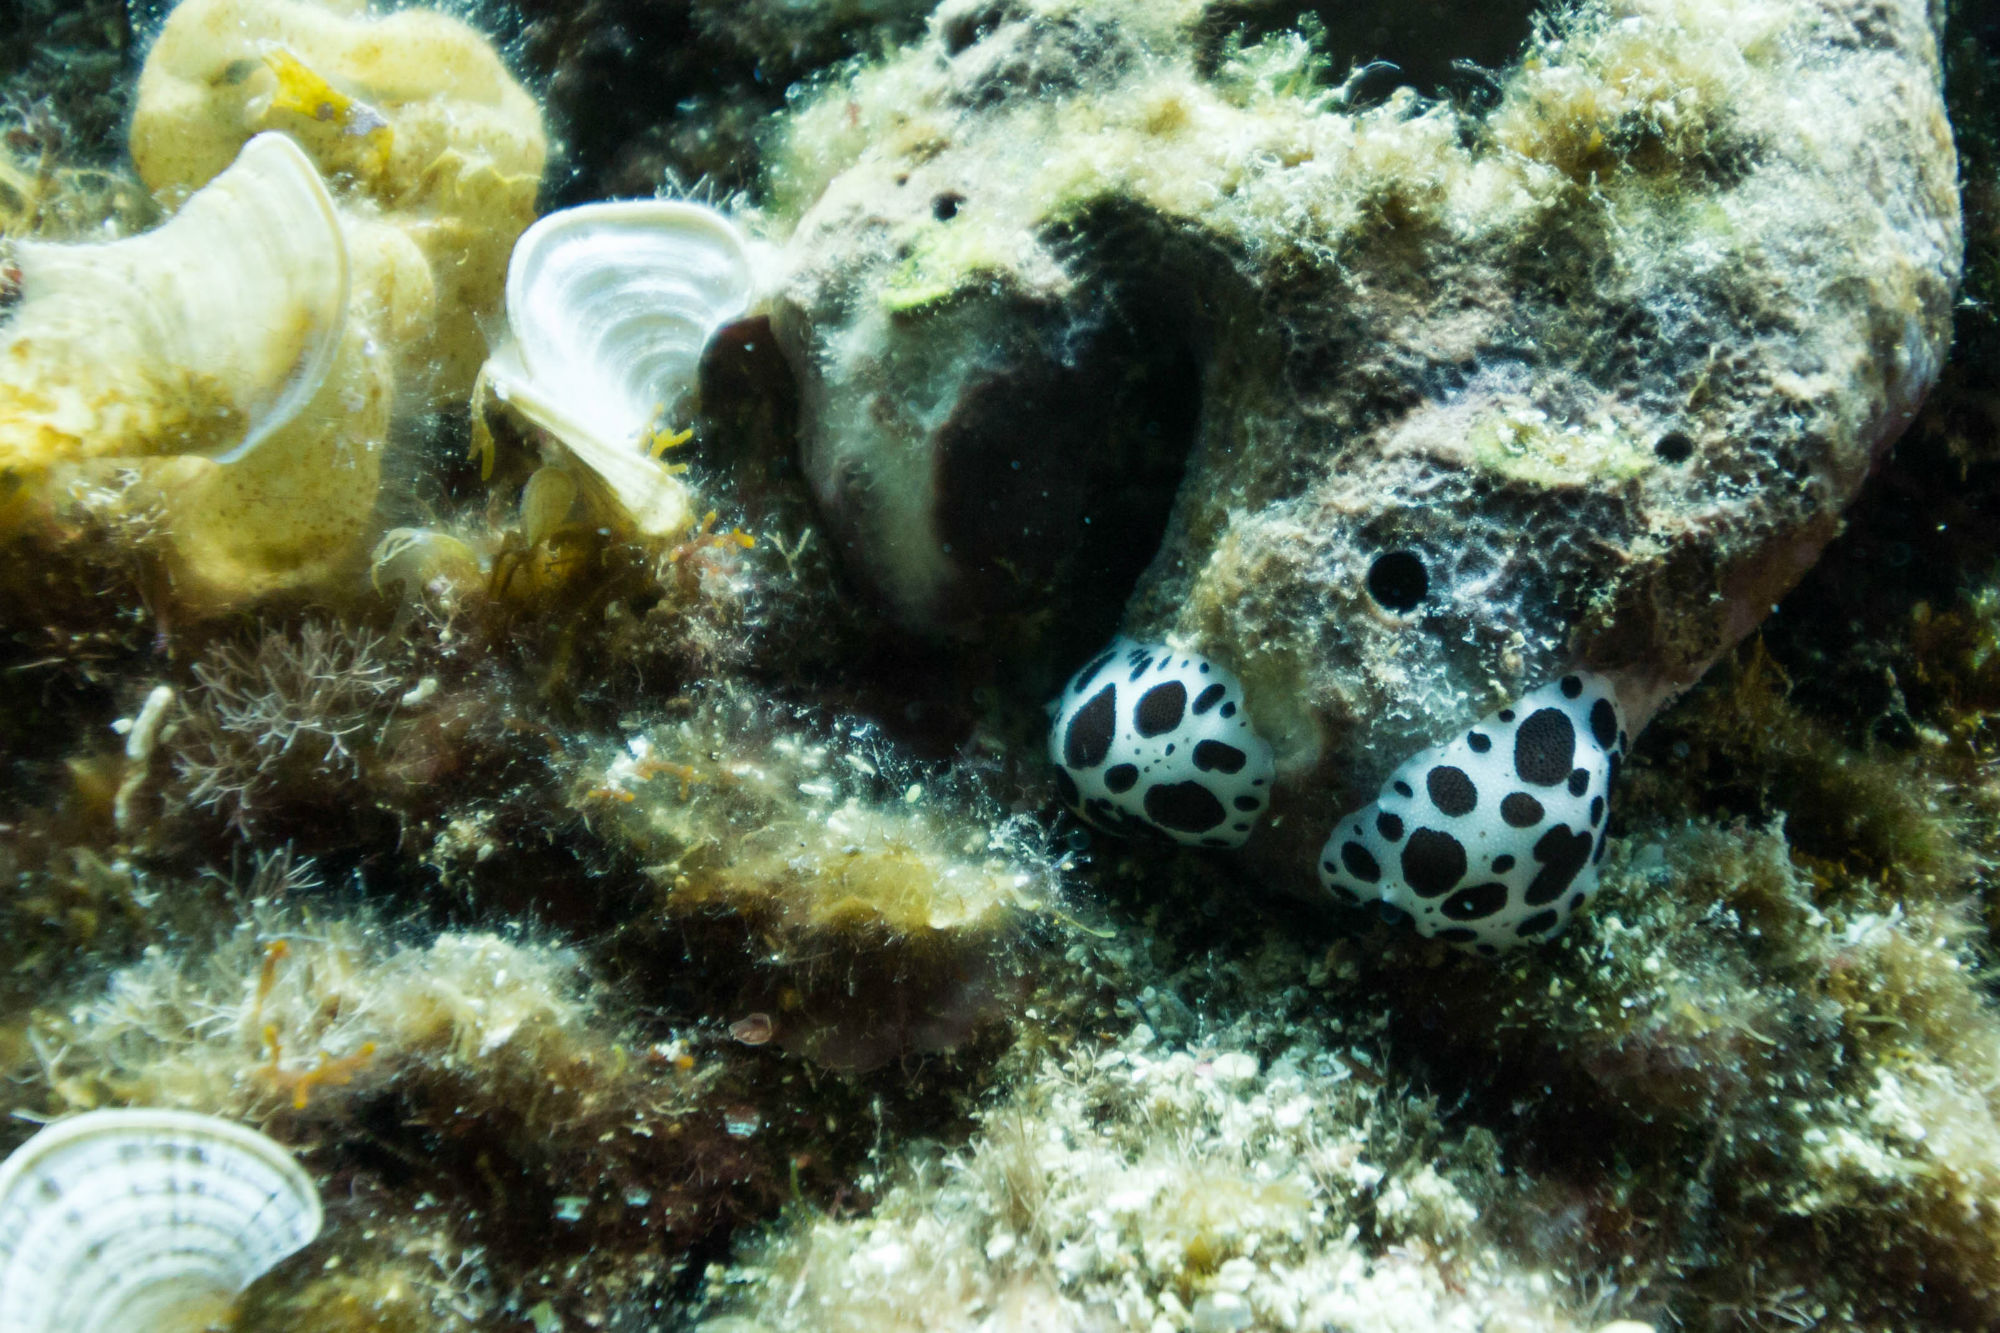 White and Black Spotted Nudibranchs on Our Croatia Dive in Dubrovnik